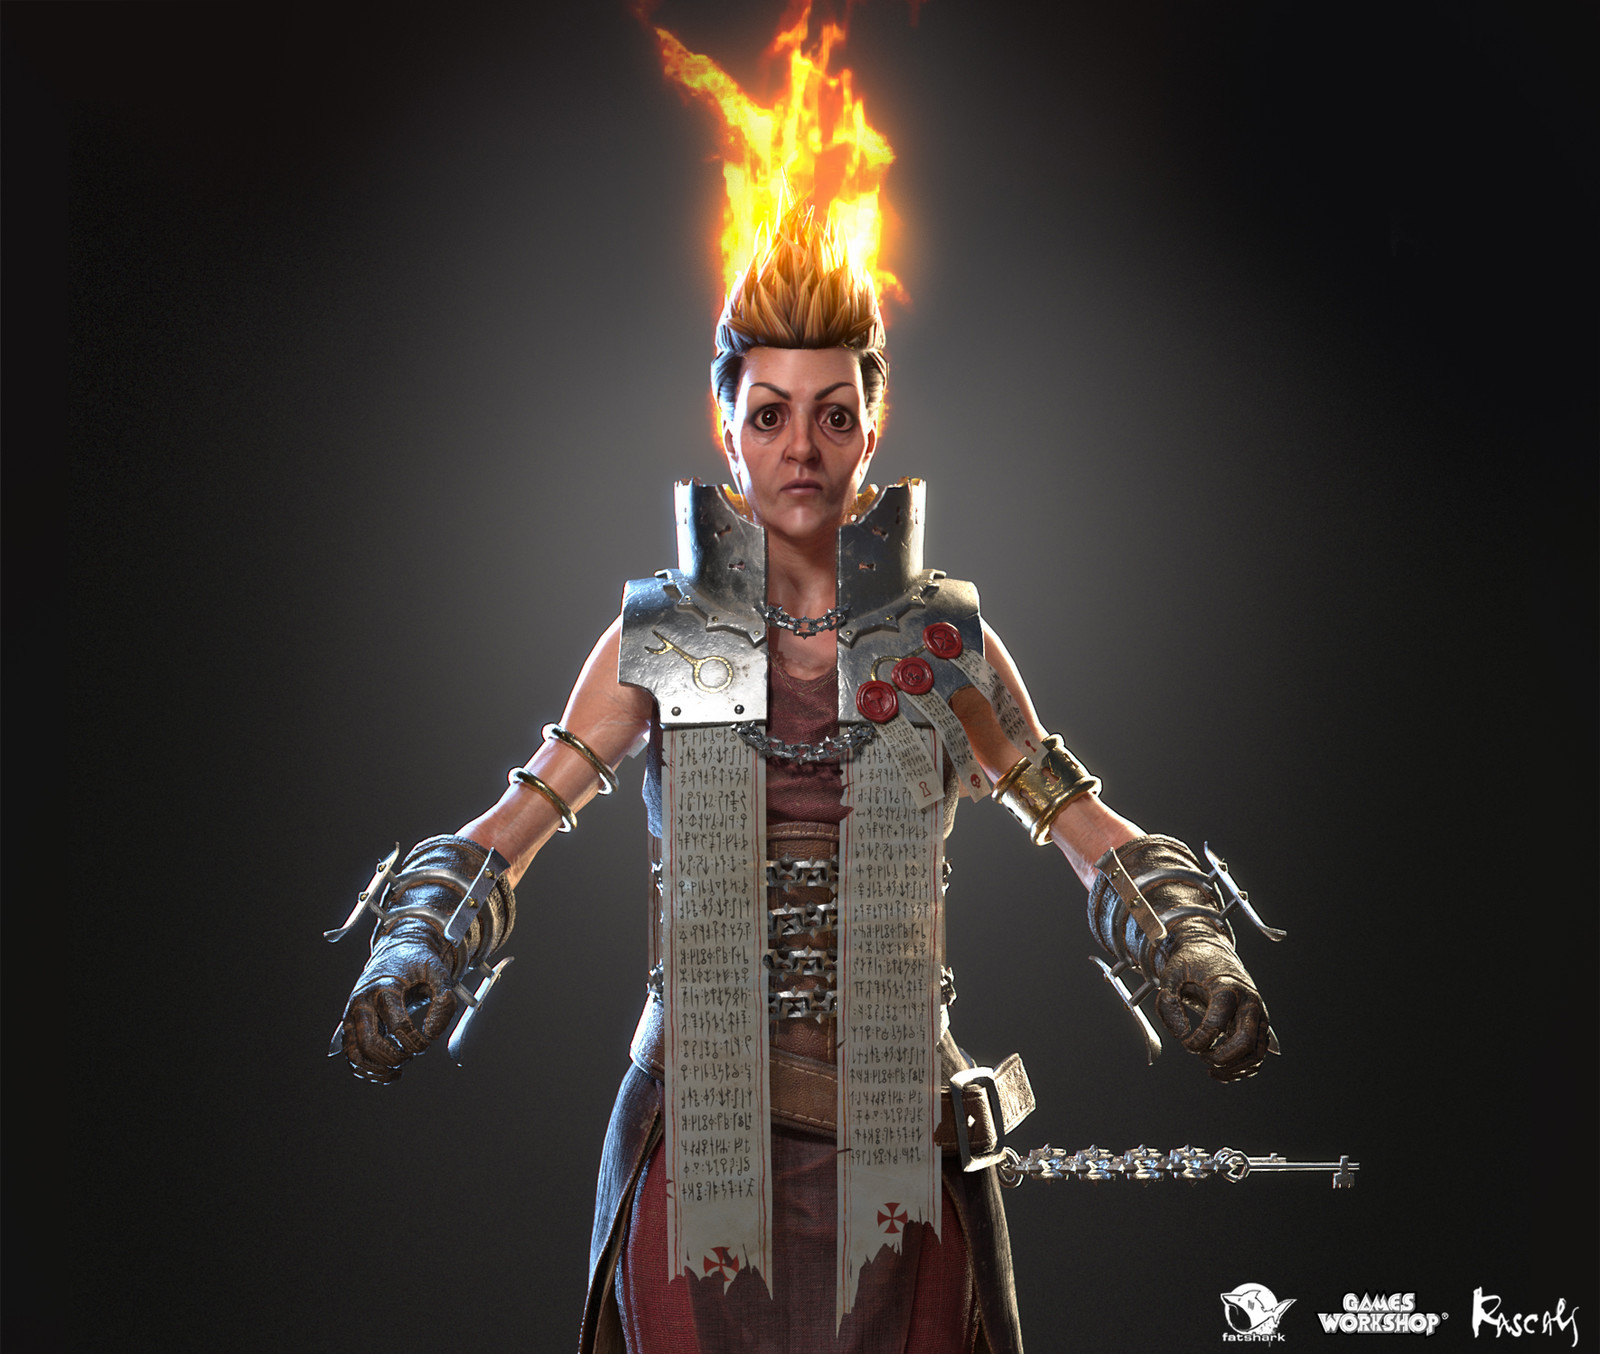 Sienna Fuegonasus: Pyromancer is one of the playable hero variants Rascals made for Warhammer: Vermintide II, Fatshark's award-winning co-op meelee action published by Games Workshop.